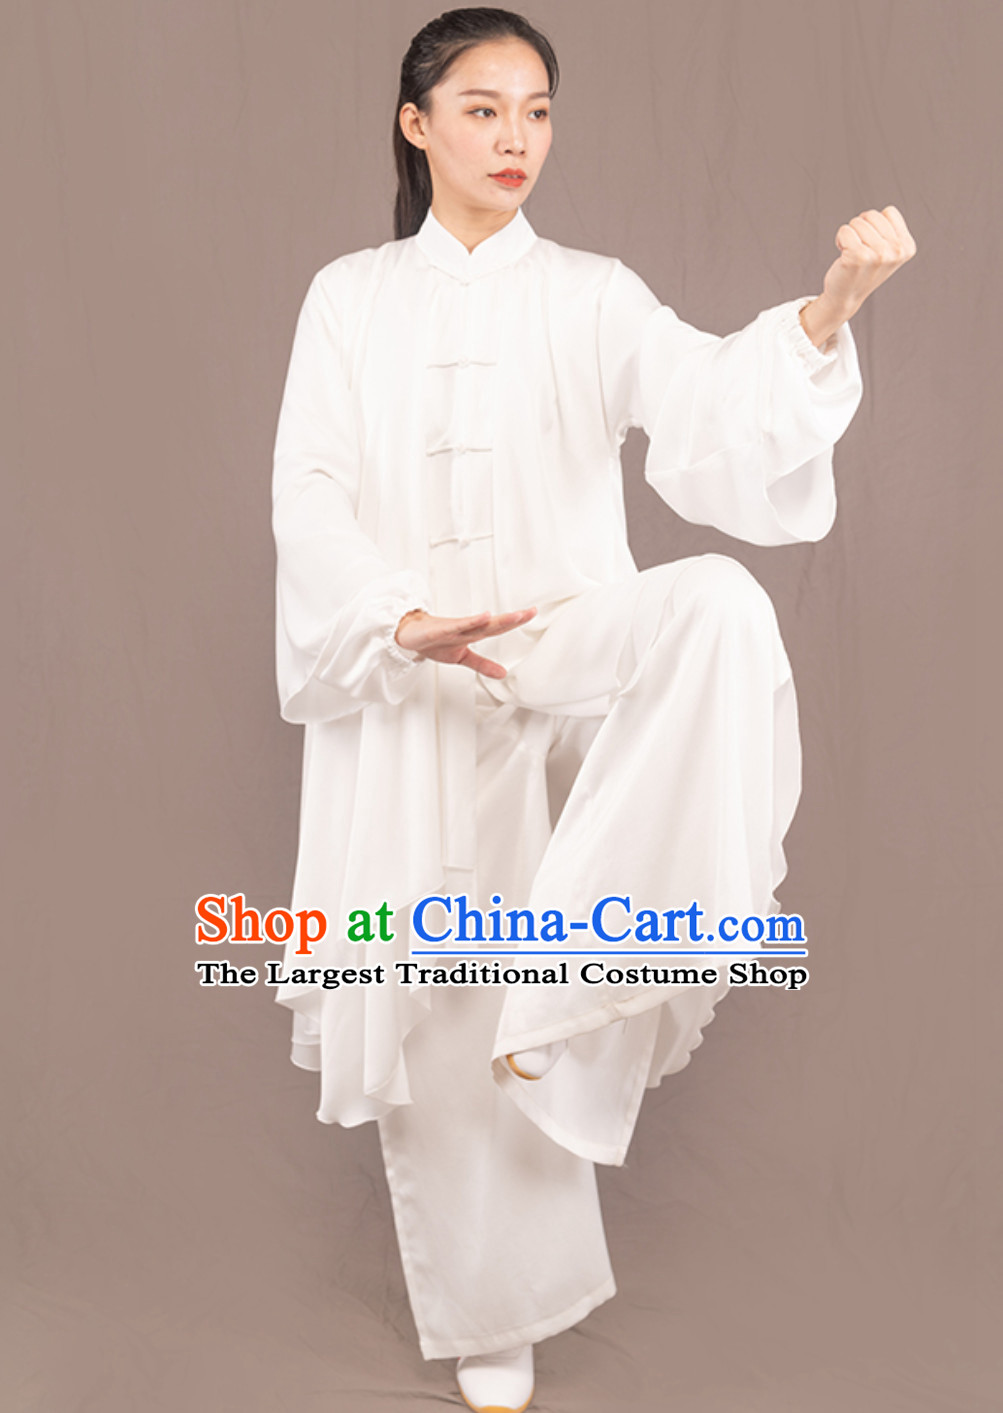 Top Chinese Traditional Competition Championship Professional Tai Chi Uniforms Taiji Kung Fu Wing Chun Kungfu Tai Ji Sword Gong Fu Master Clothing Suits Clothes Complete Set